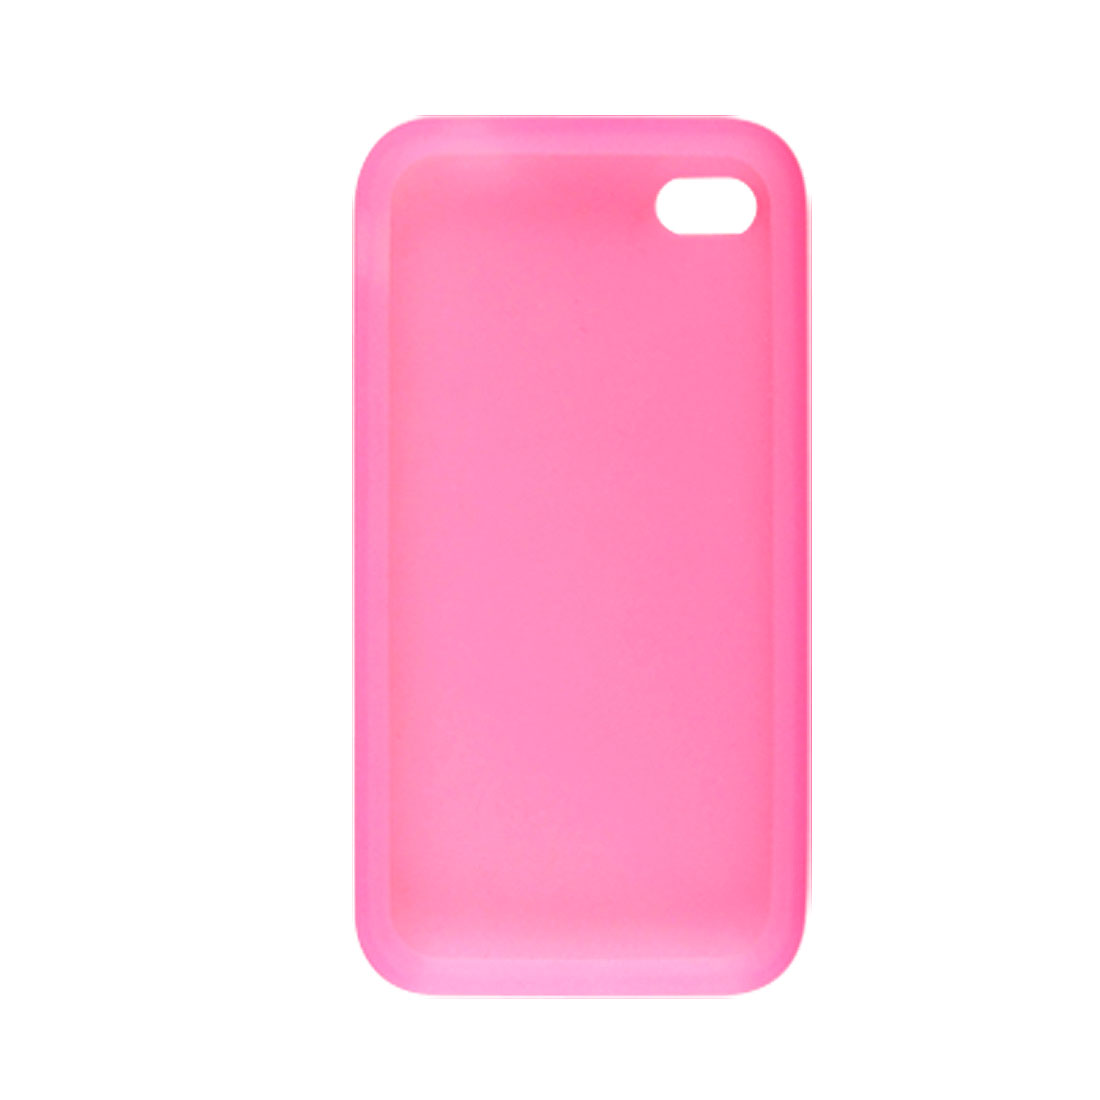 Pink Silicone Skin Back Case Protector for iPhone 4 4G